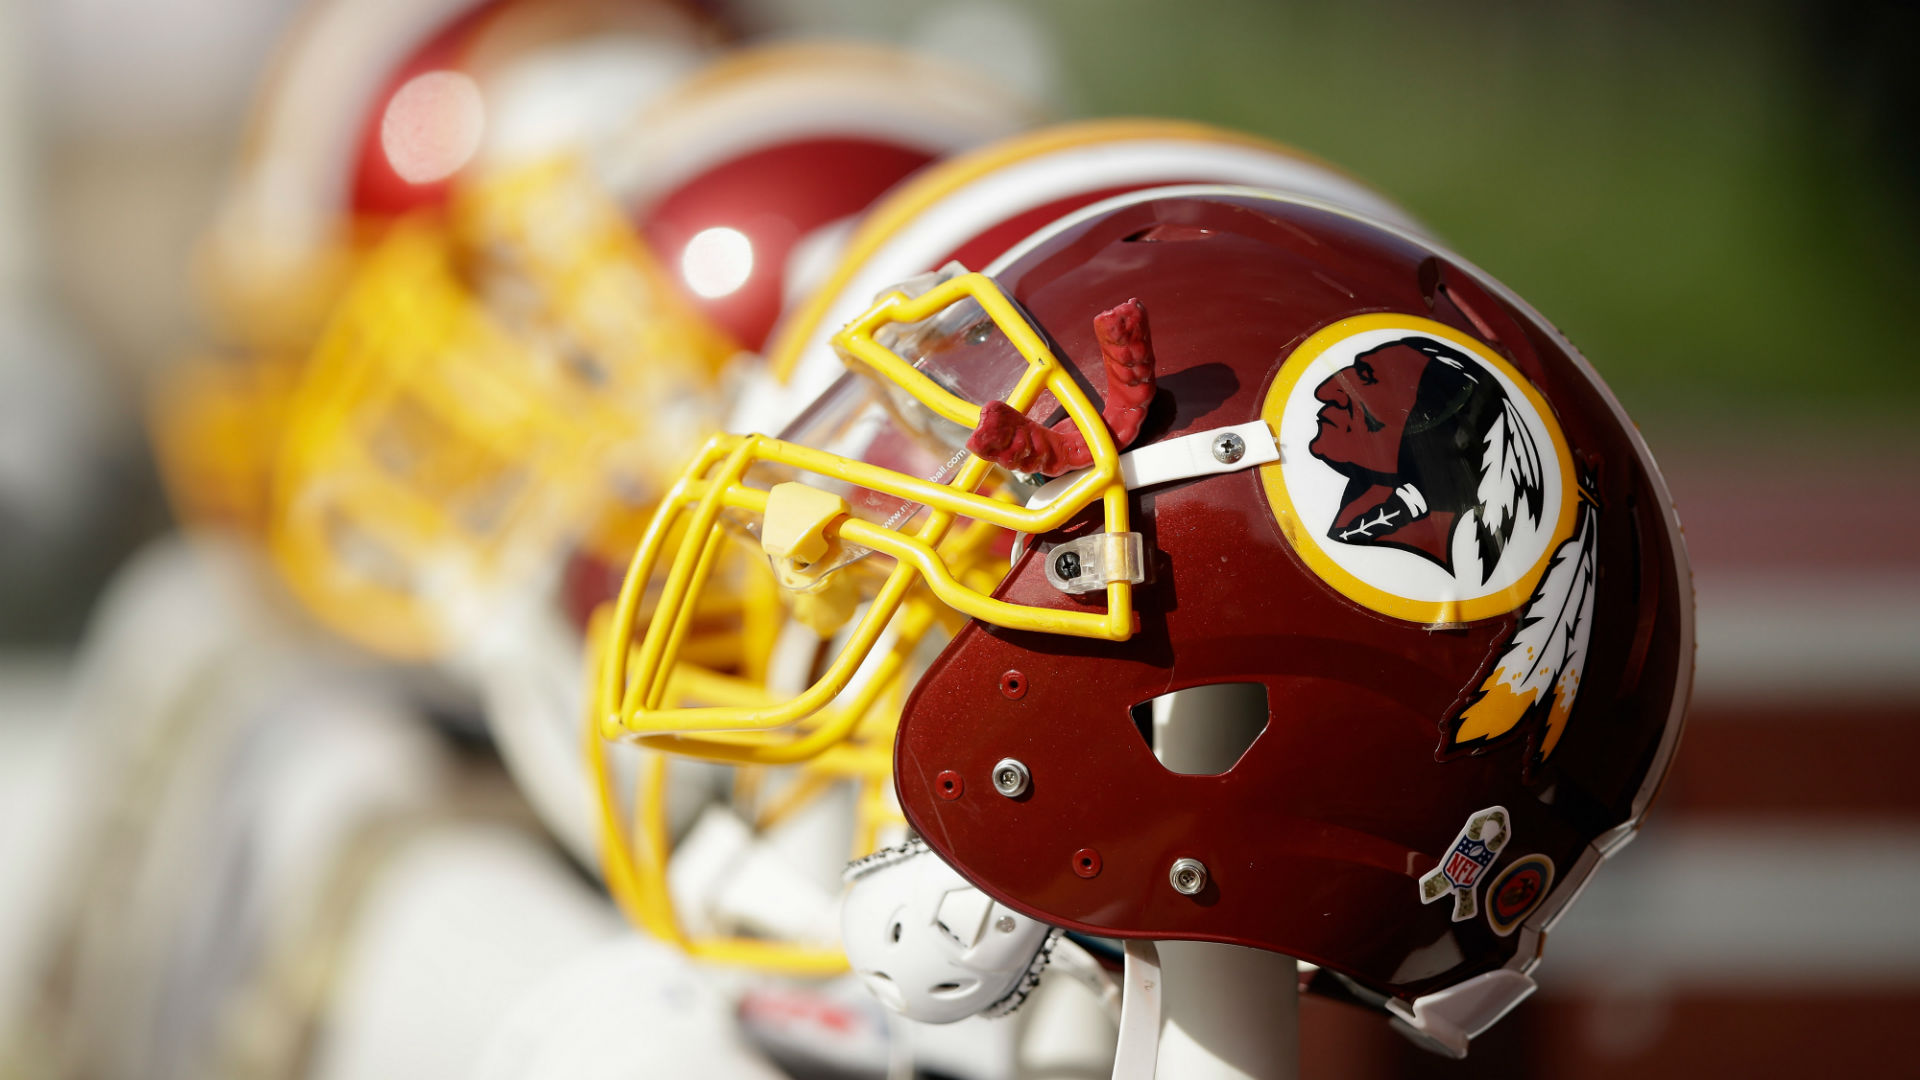 Redskins-helmet-02052015-US-News-Getty-FTR